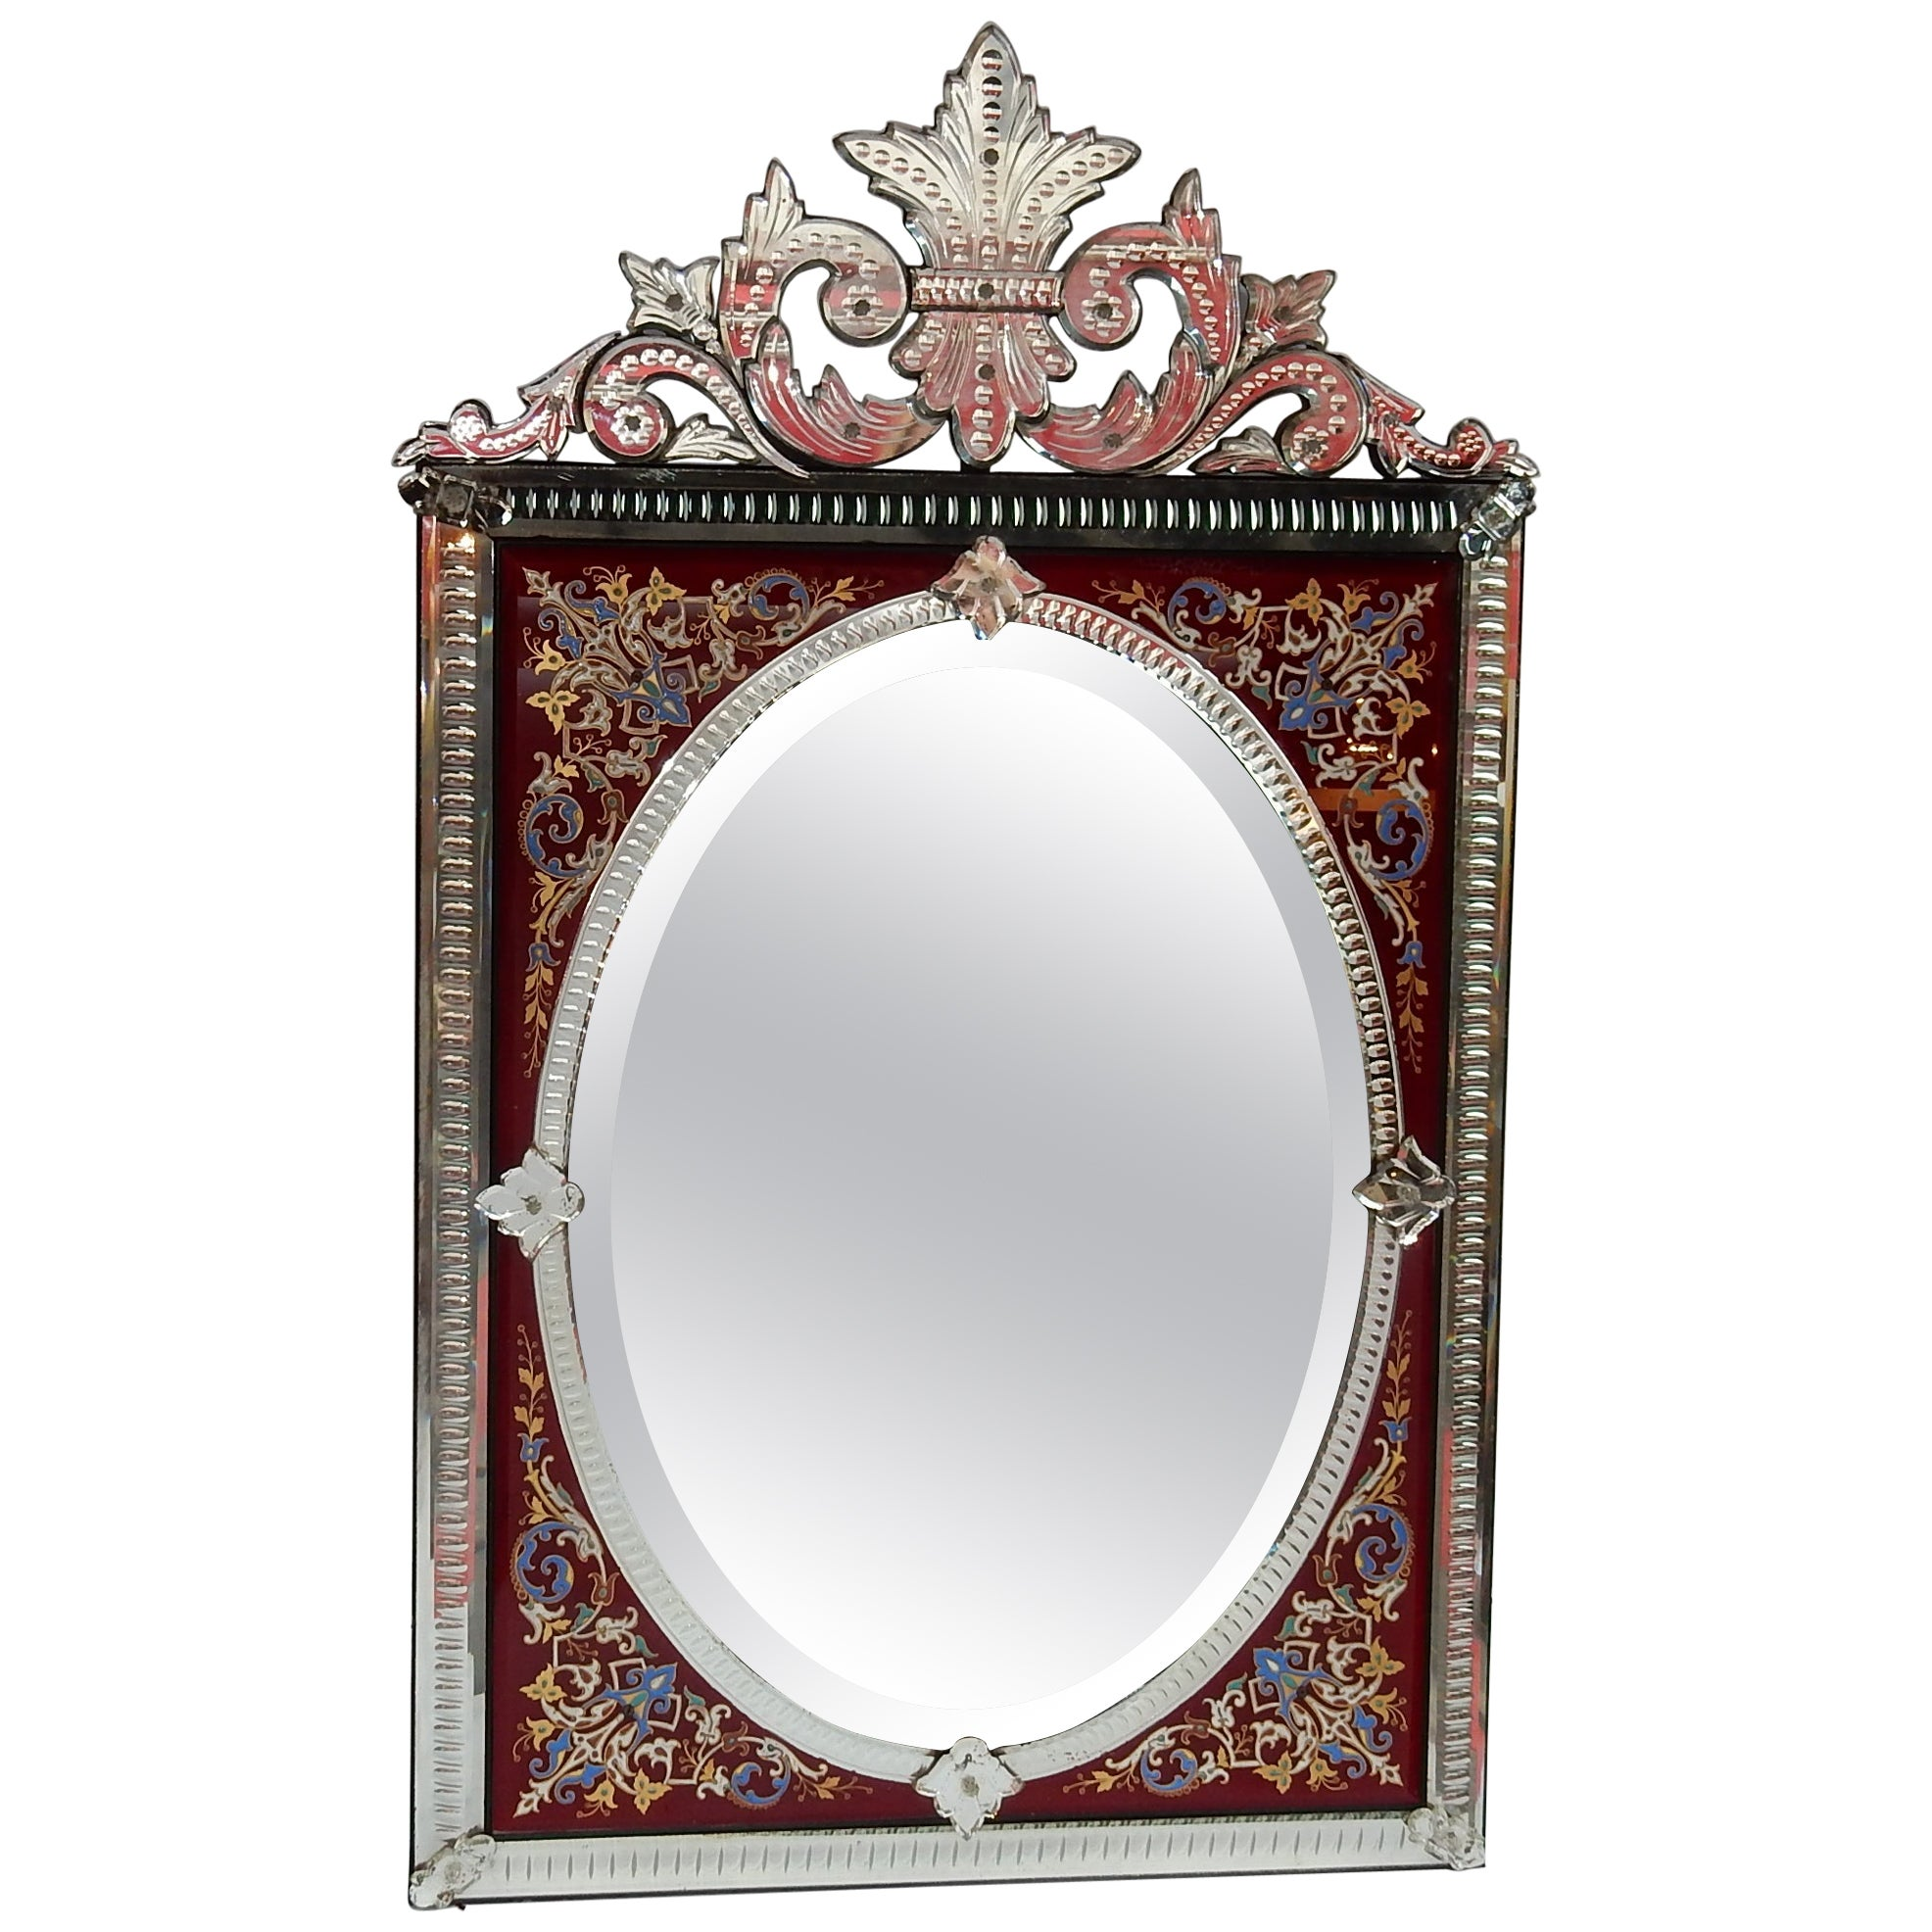 1880-1900 Venitian Mirror with Pediment - Red Color Glass Adorned with Flowers